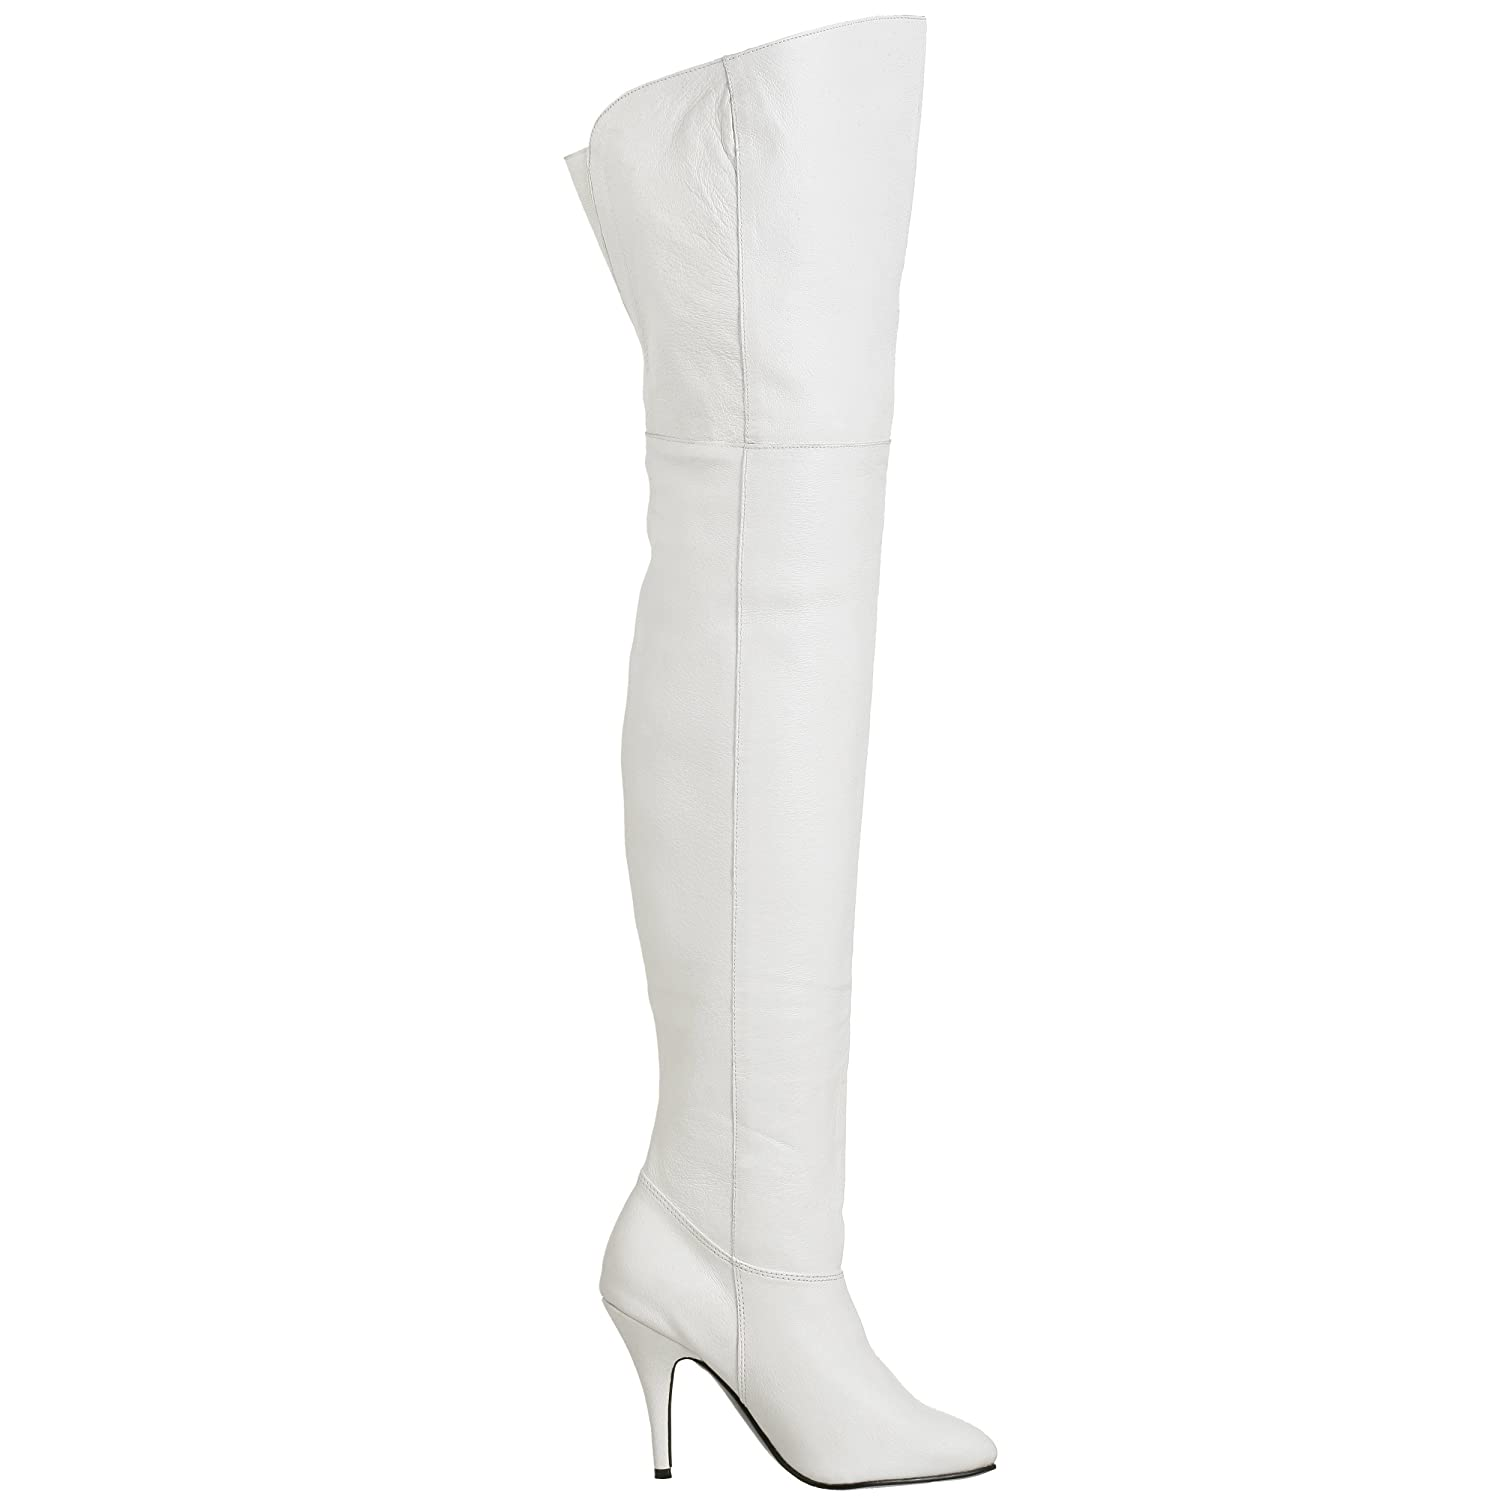 b909b8cc236 Pleaser Women s LEGEND-8868 Unlined classic over-knee boots